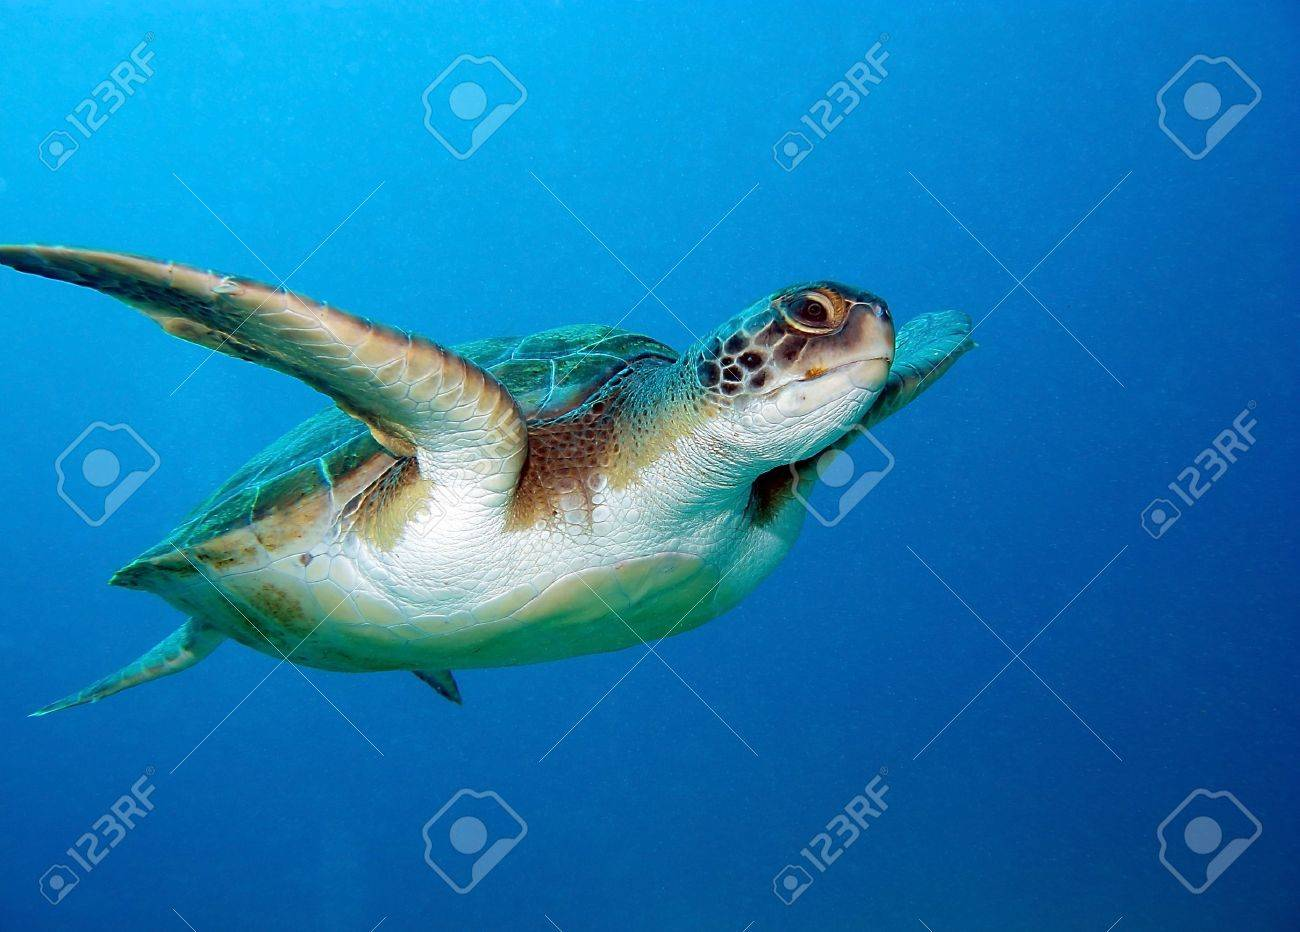 turtle stock photos royalty free turtle images and pictures